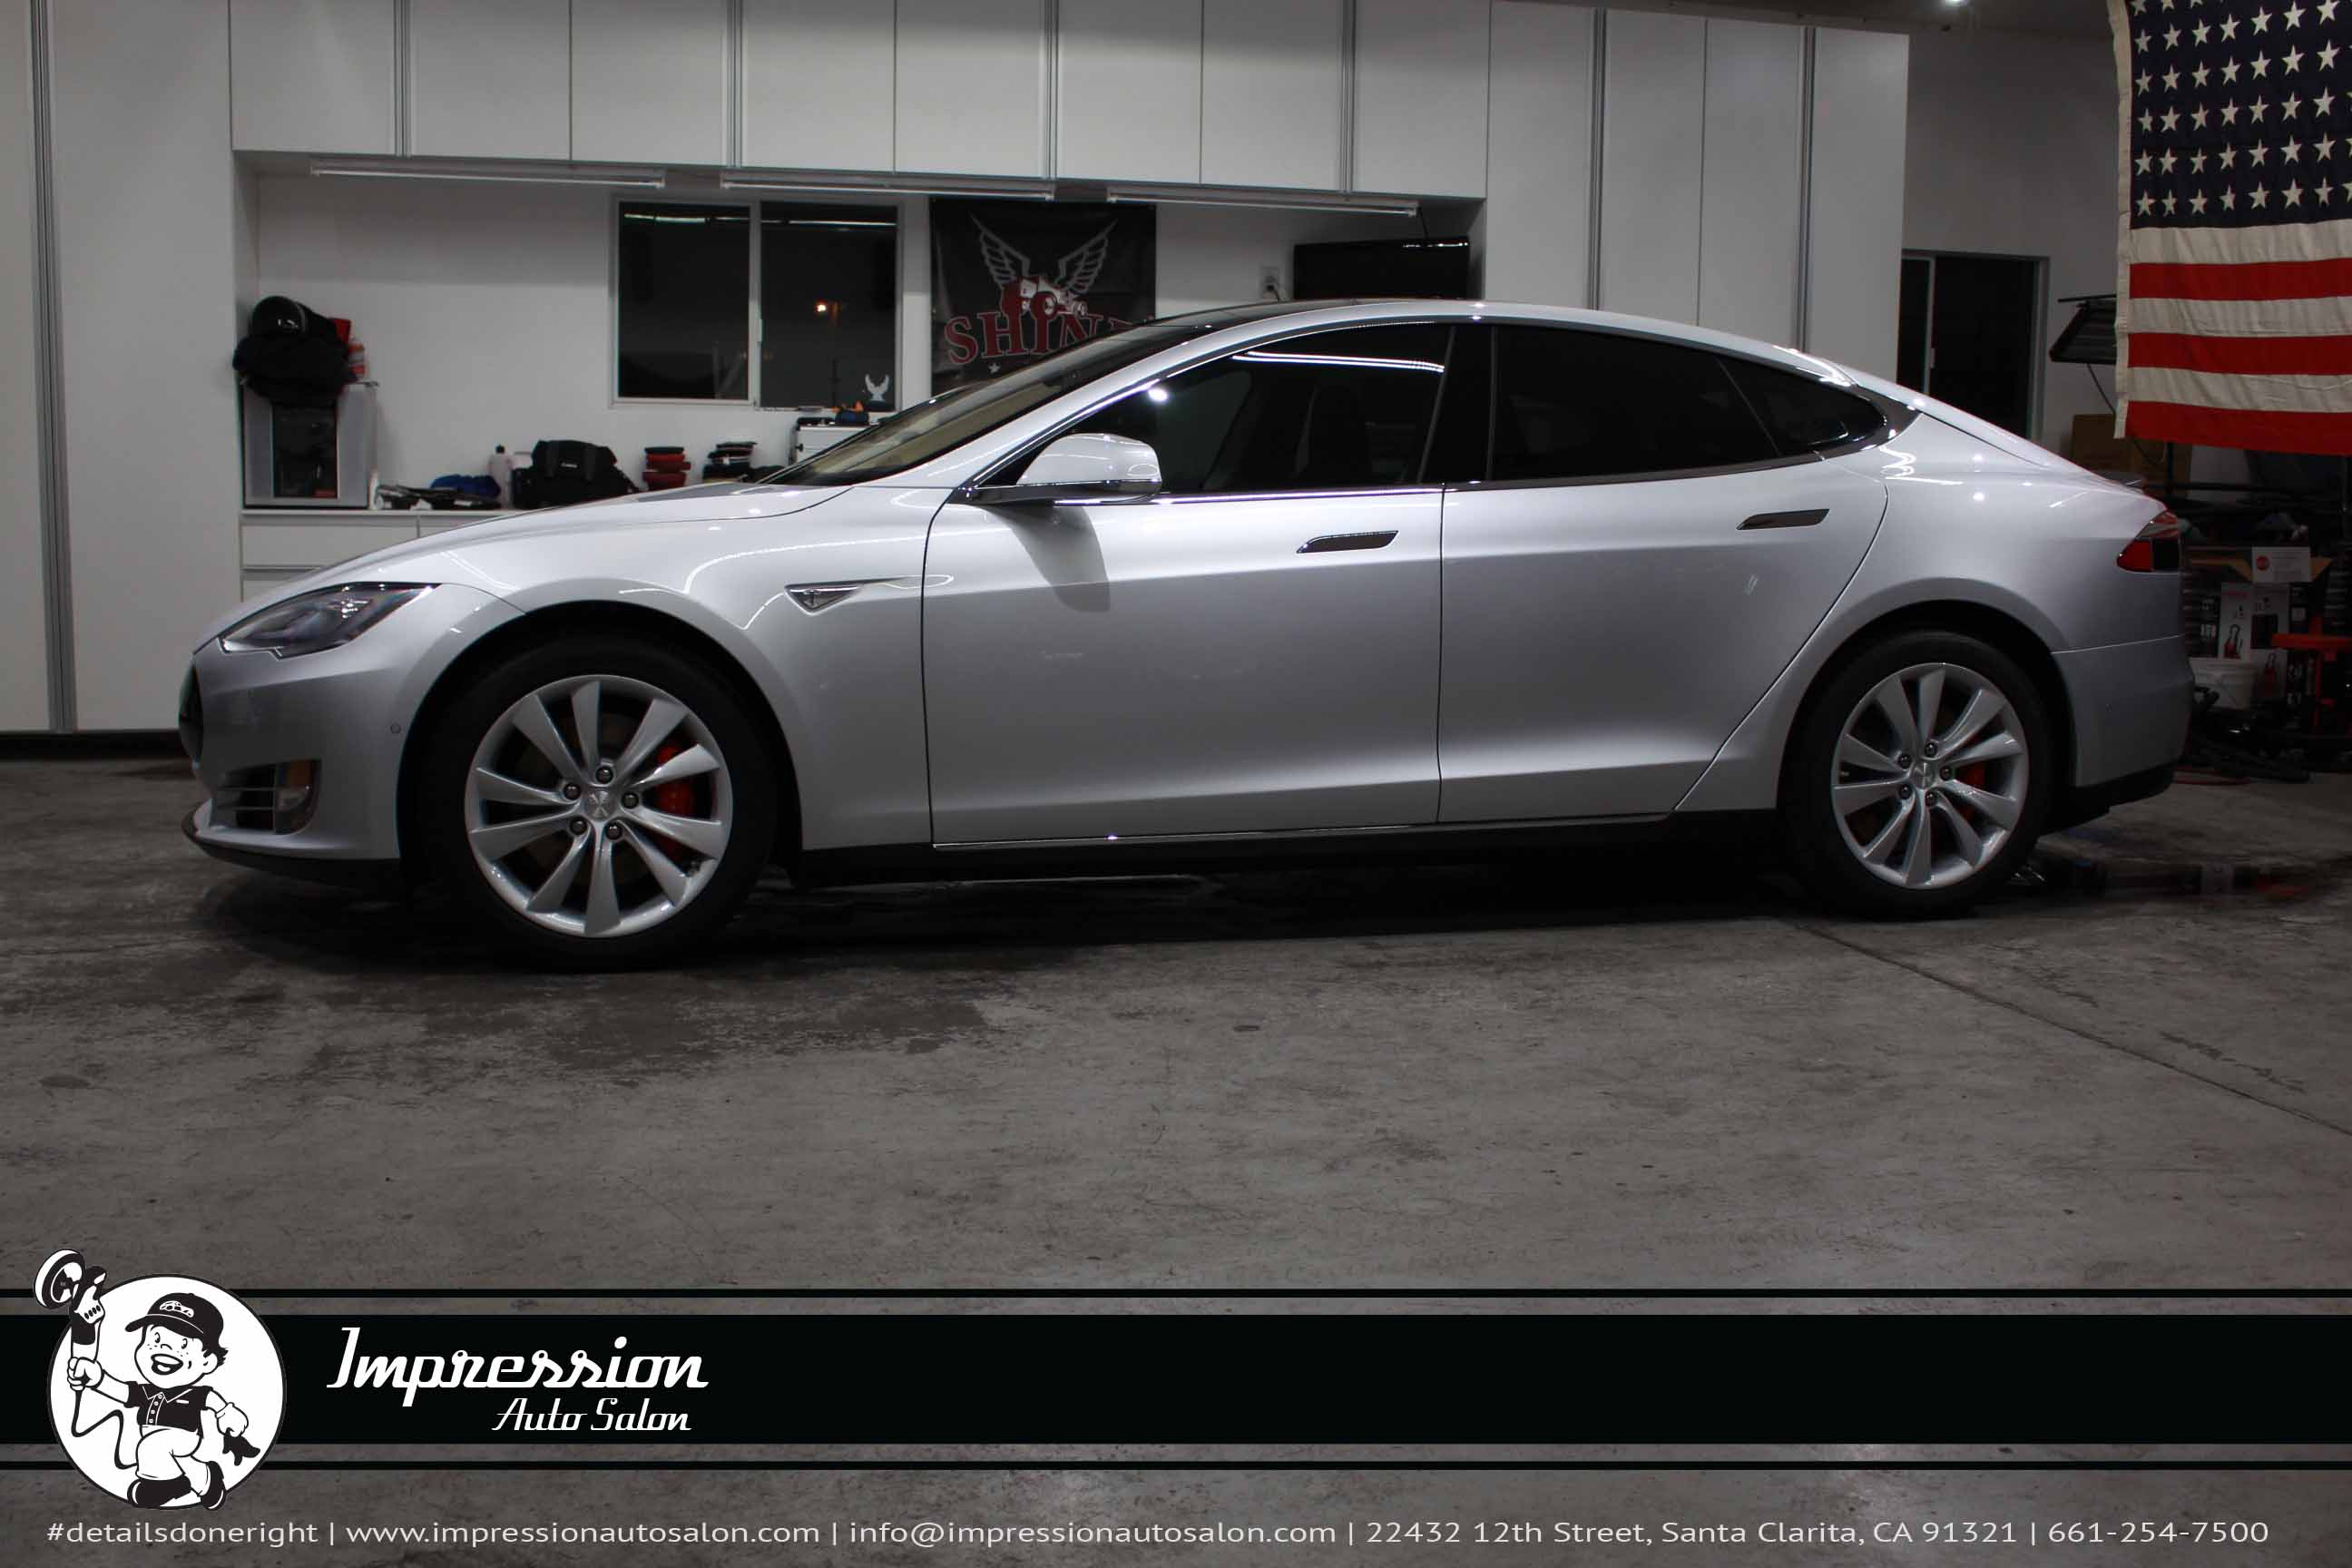 Silver 2015 Tesla S P85D After CQuartz Finest Coating and Nose Paint Protection Film - Side View.jpg